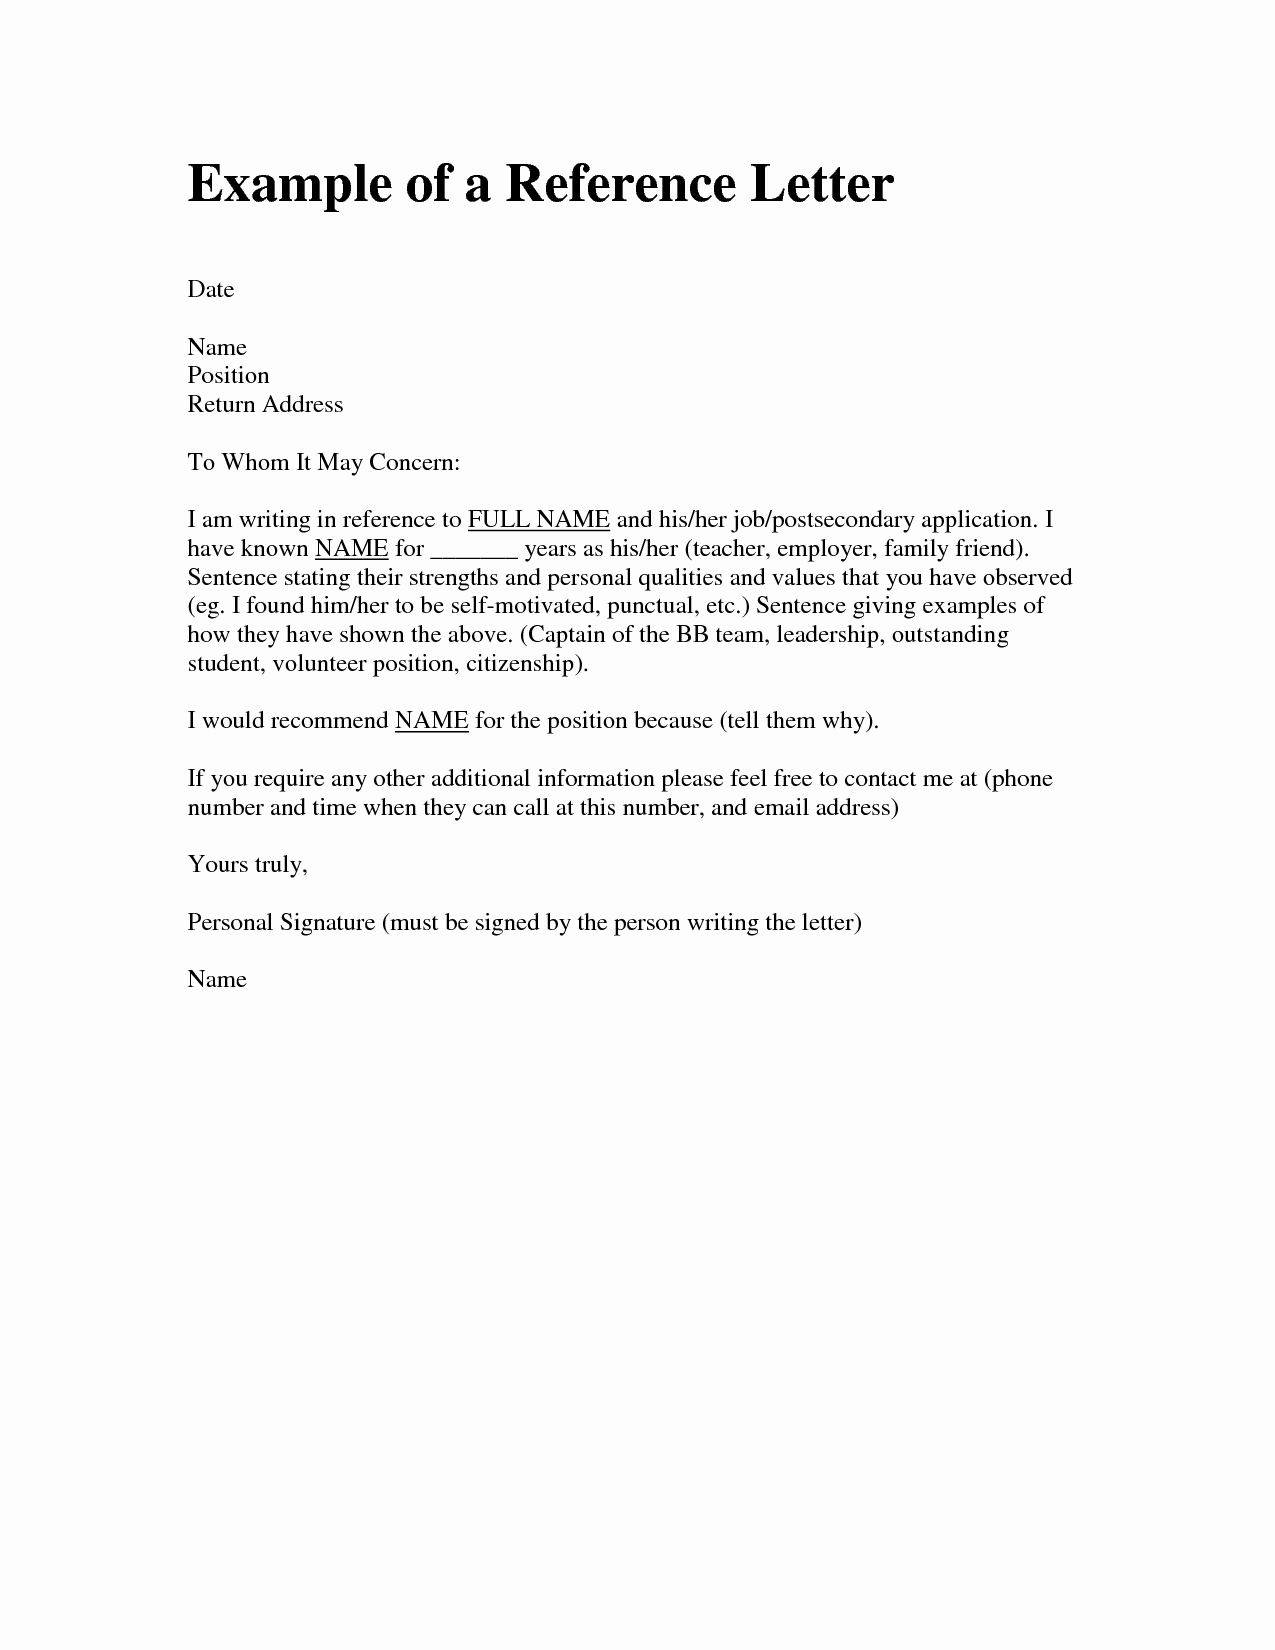 Personal Letters Of Recommendation Inspirational Personal Character Reference Letter for A Friend Sample